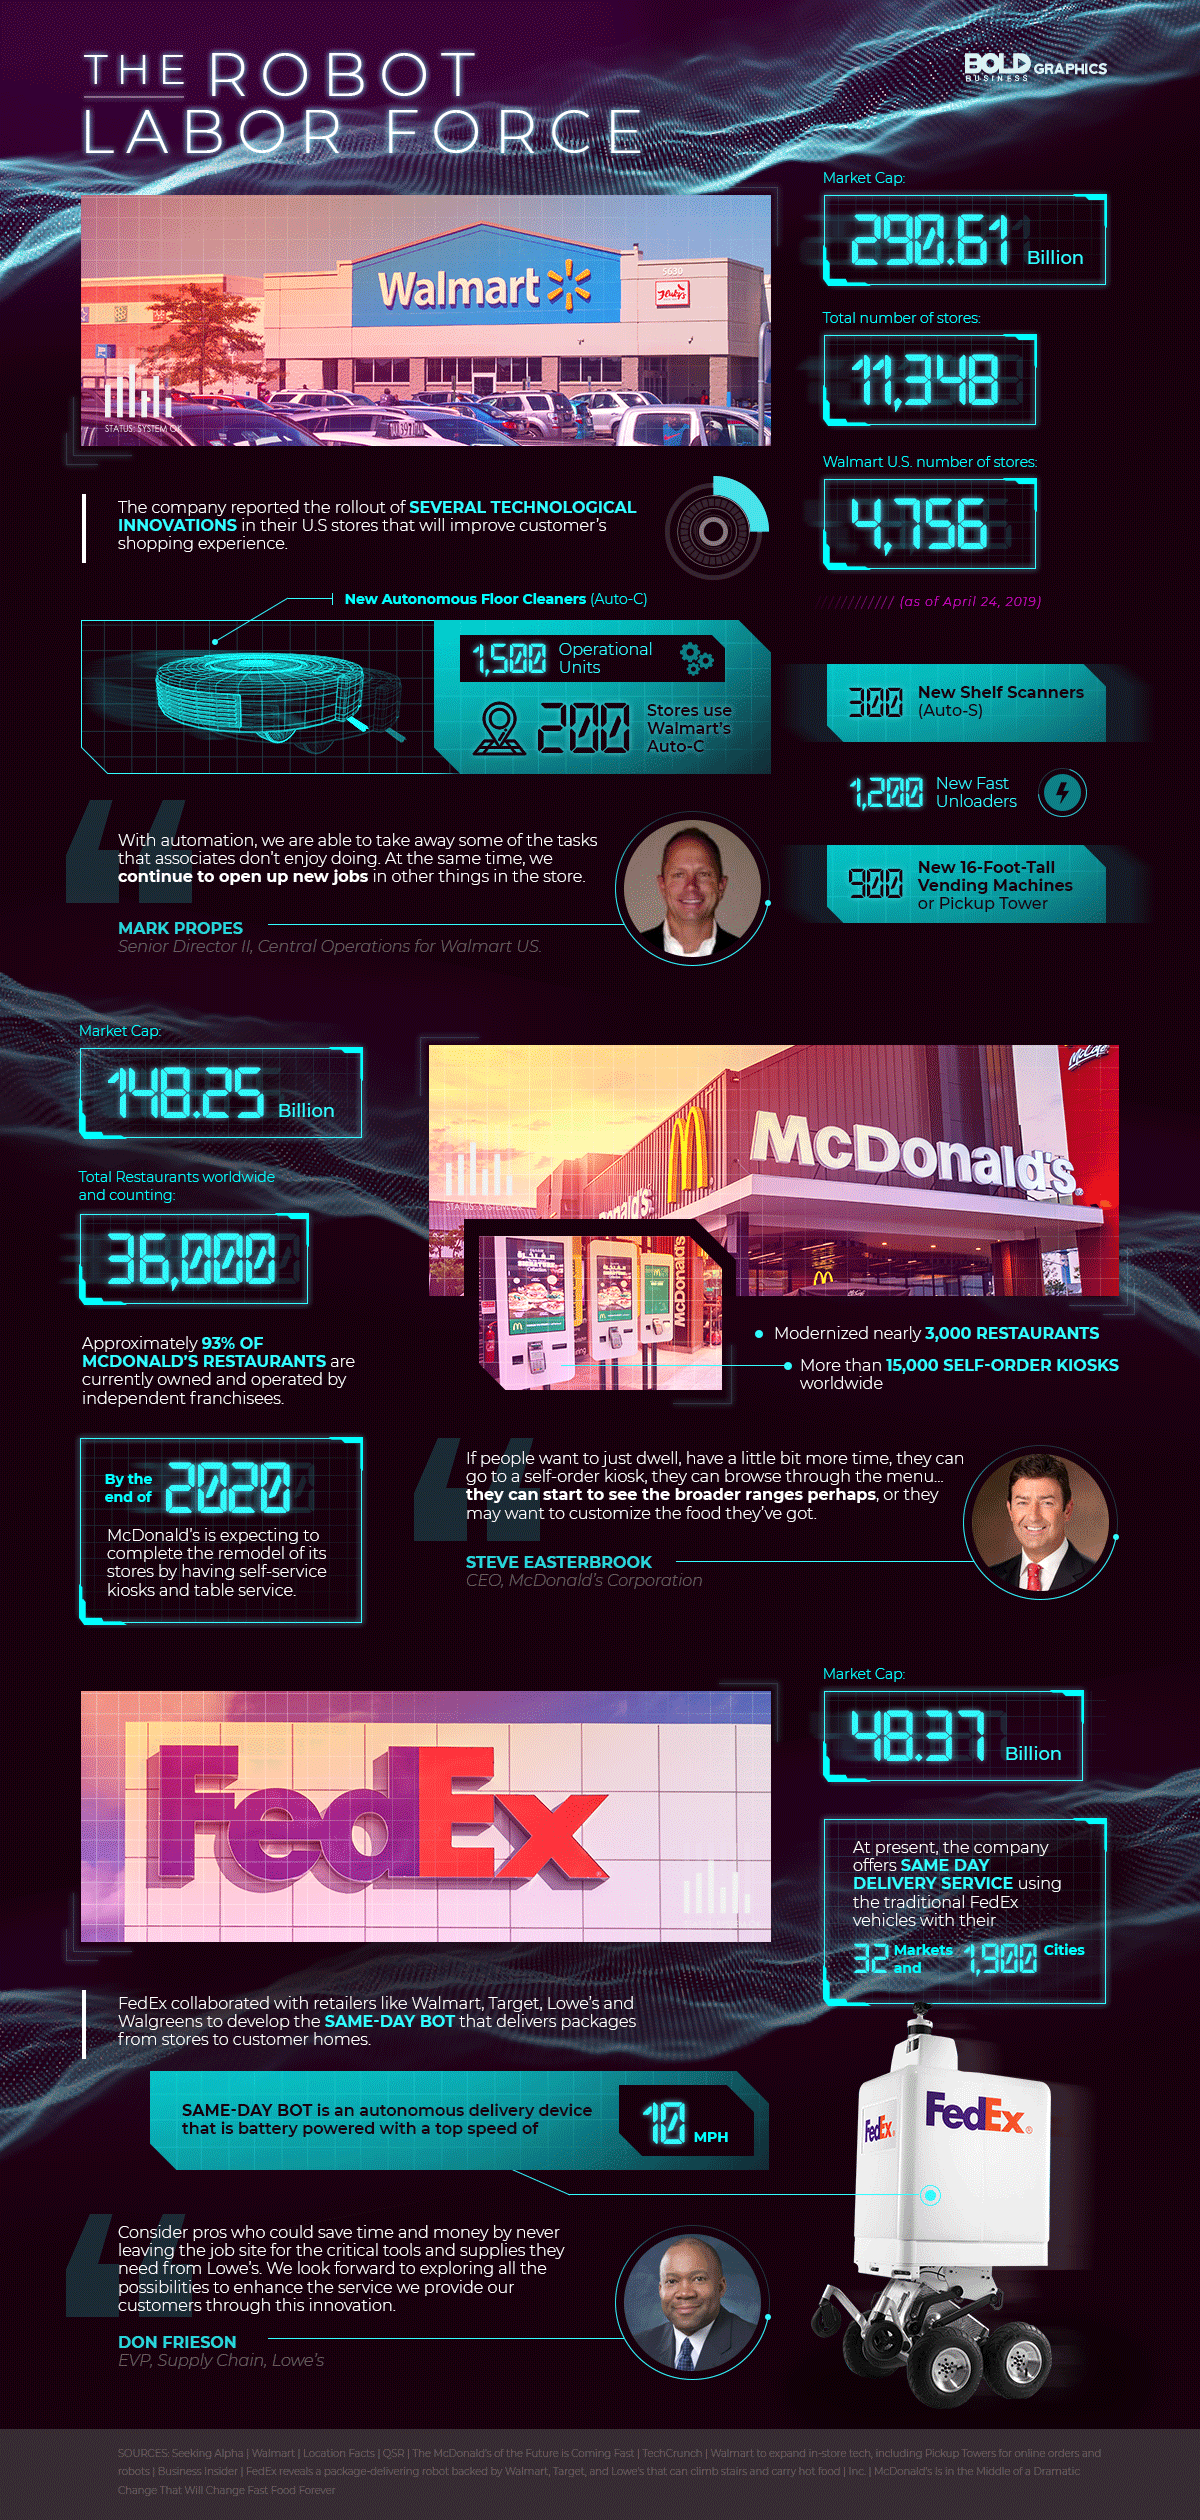 The Robotic Workforce - Walmart and Mcdo's Robotic Labor Force Infographics